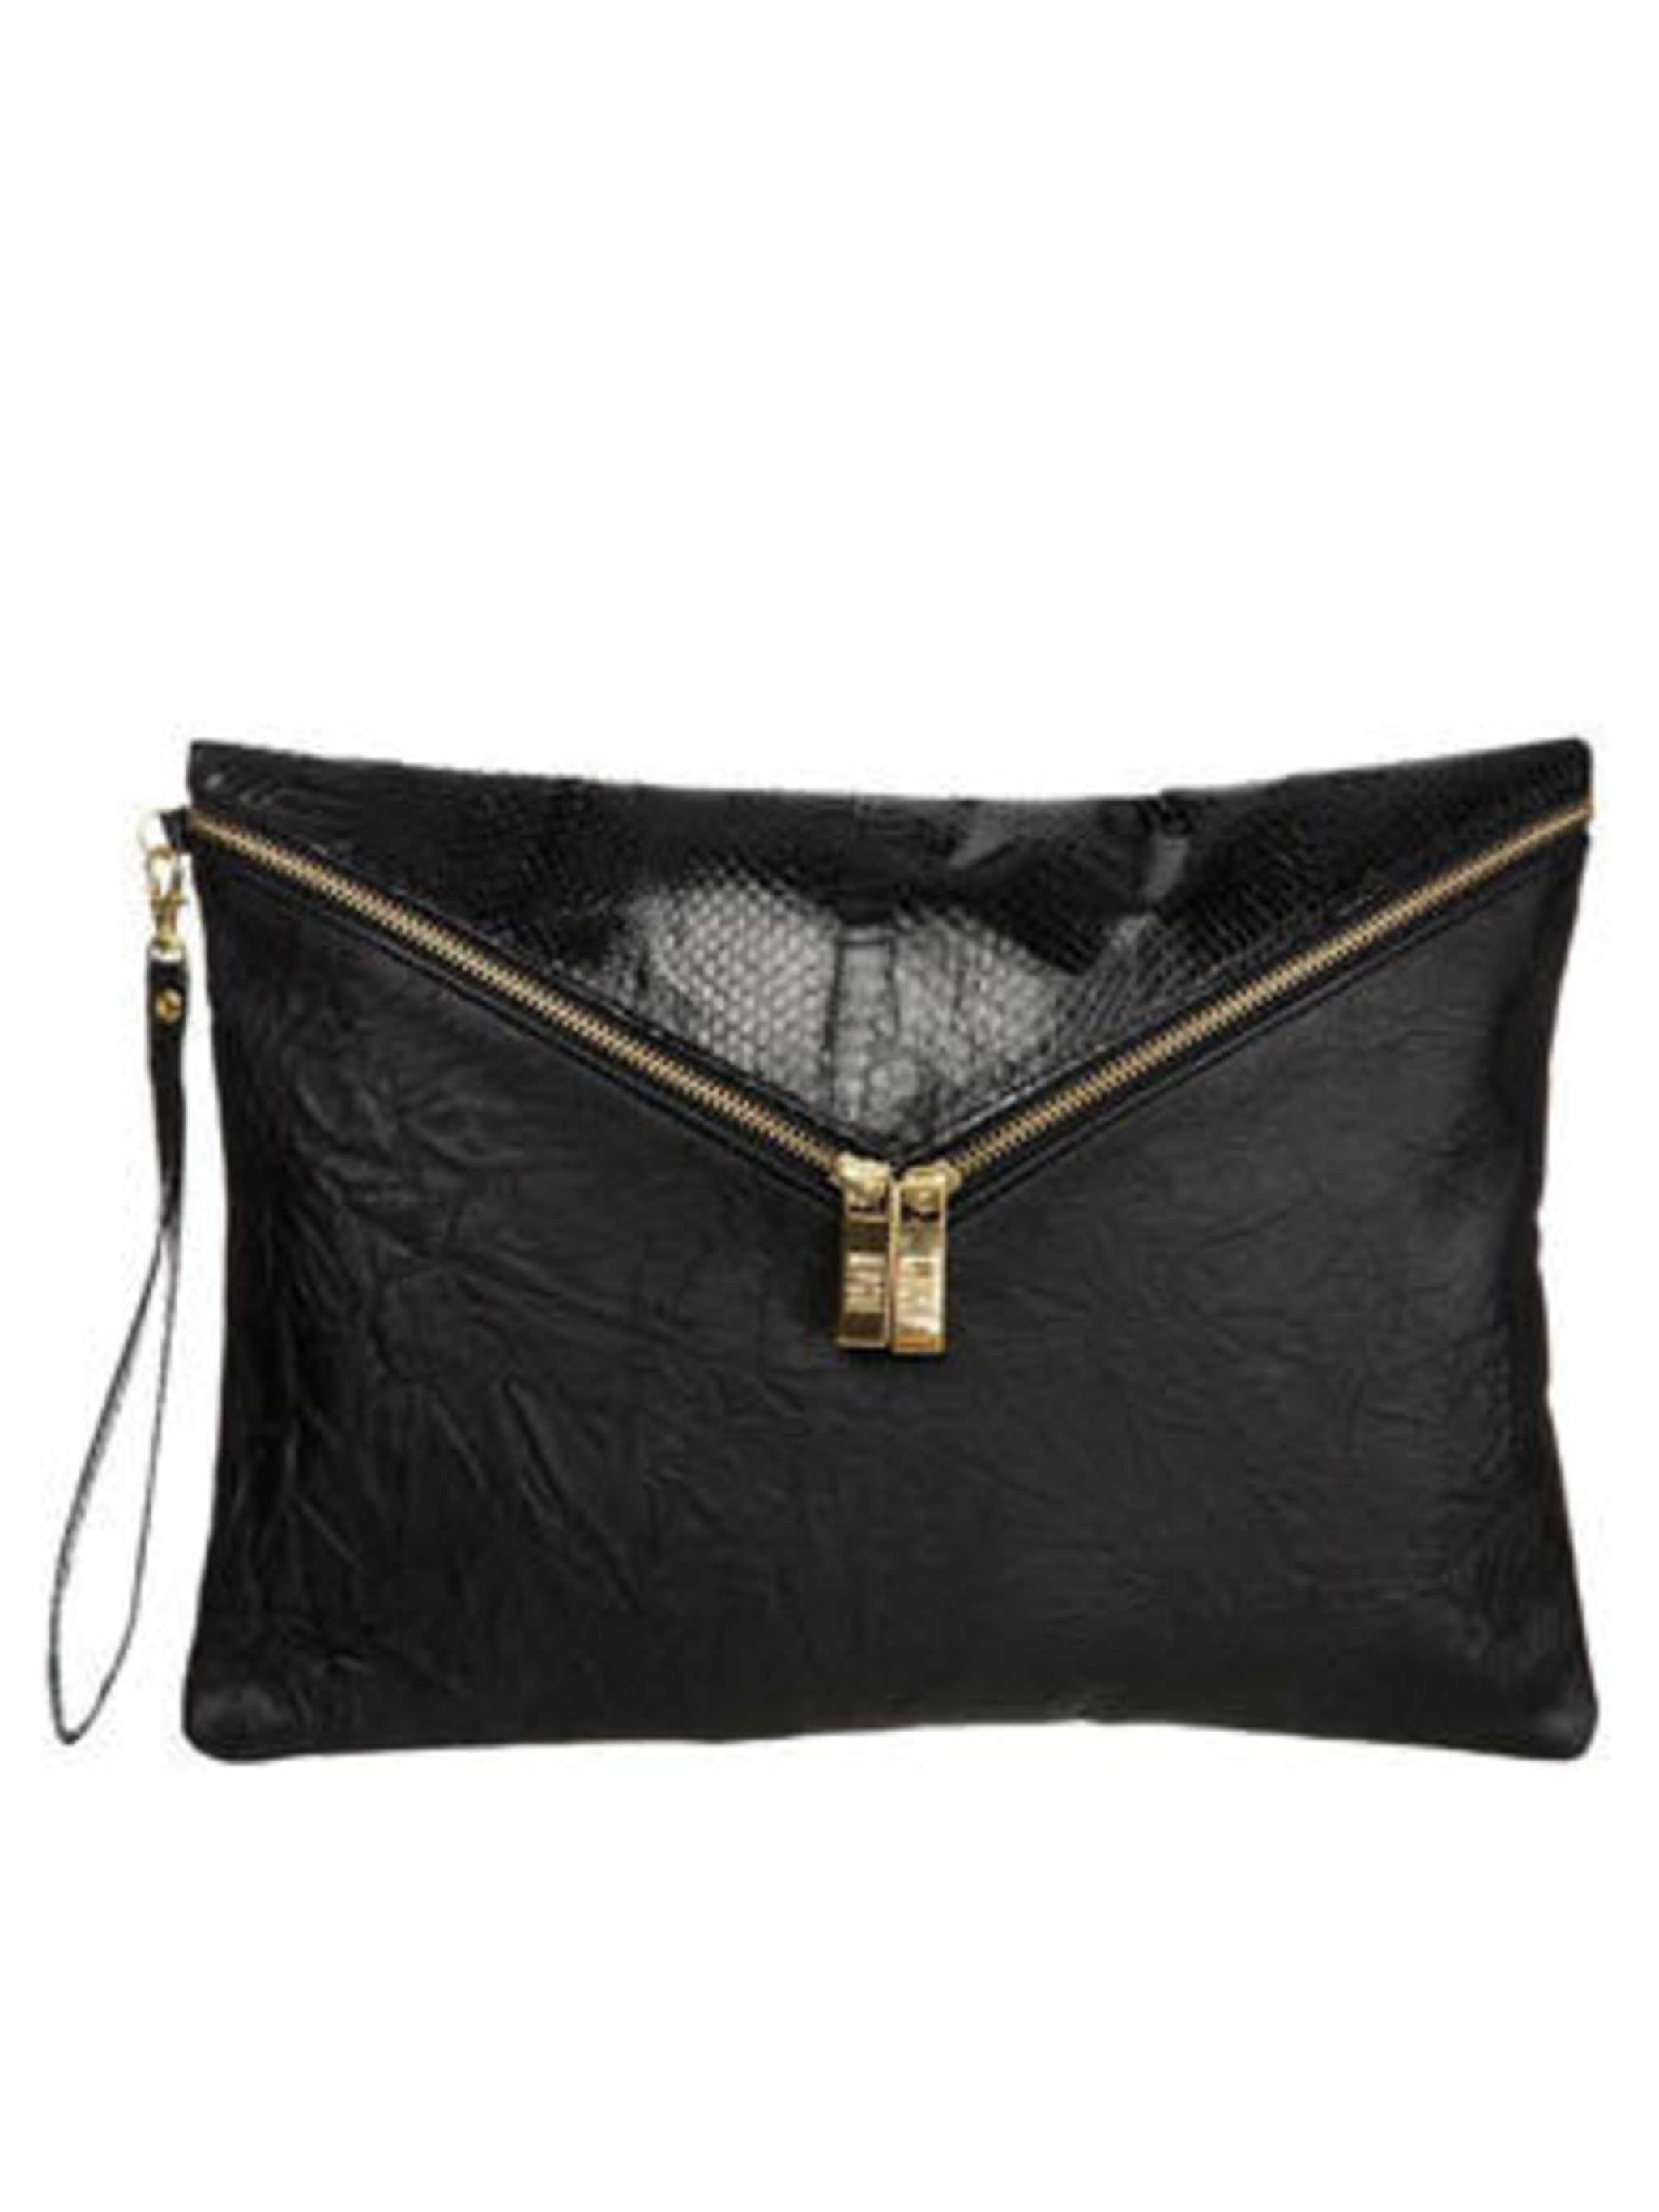 """<p>Leather clutch, £98 by Mogil at <a href=""""http://www.bunnyhug.co.uk/fashionshop/gbu0-prodshow/Mogil_Black_Washed_Leather_and_Snake_Detail_Super_Size_Witch_Envelope_Clutch.html"""">Bunnyhug</a></p>"""